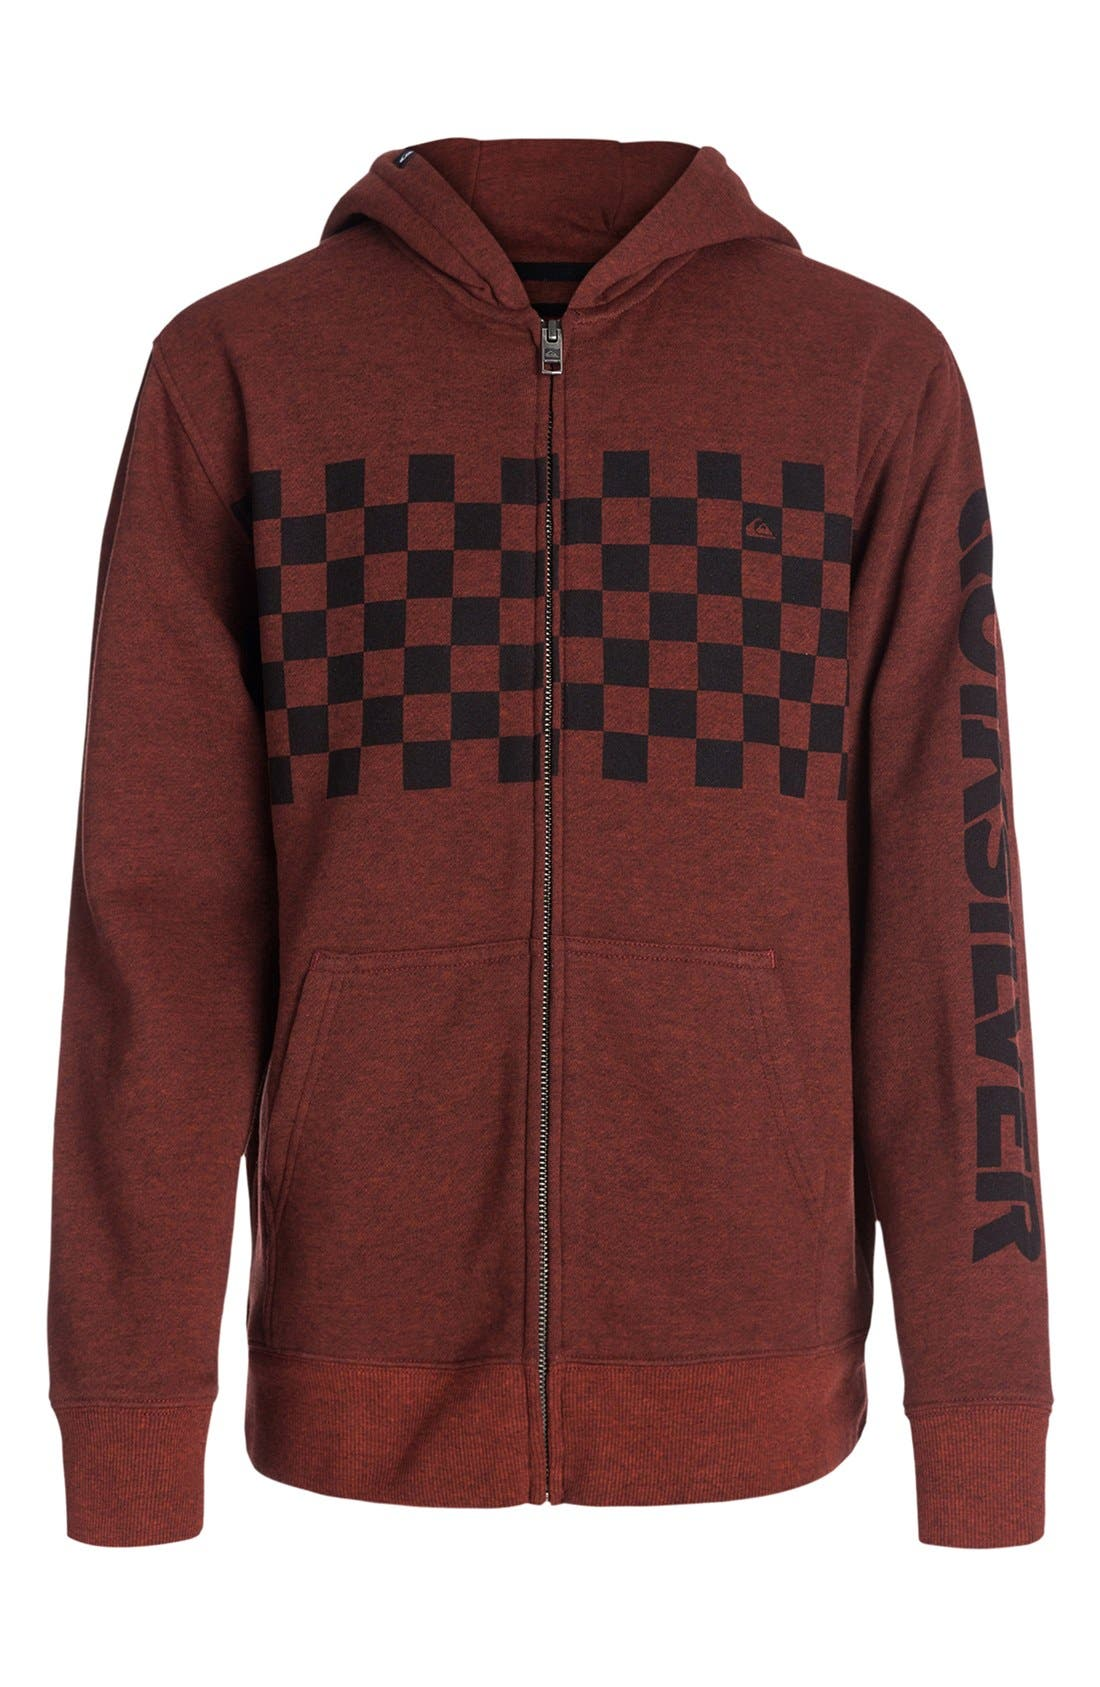 Alternate Image 1 Selected - Quiksilver 'Checker' Hoodie (Toddler Boys & Little Boys)